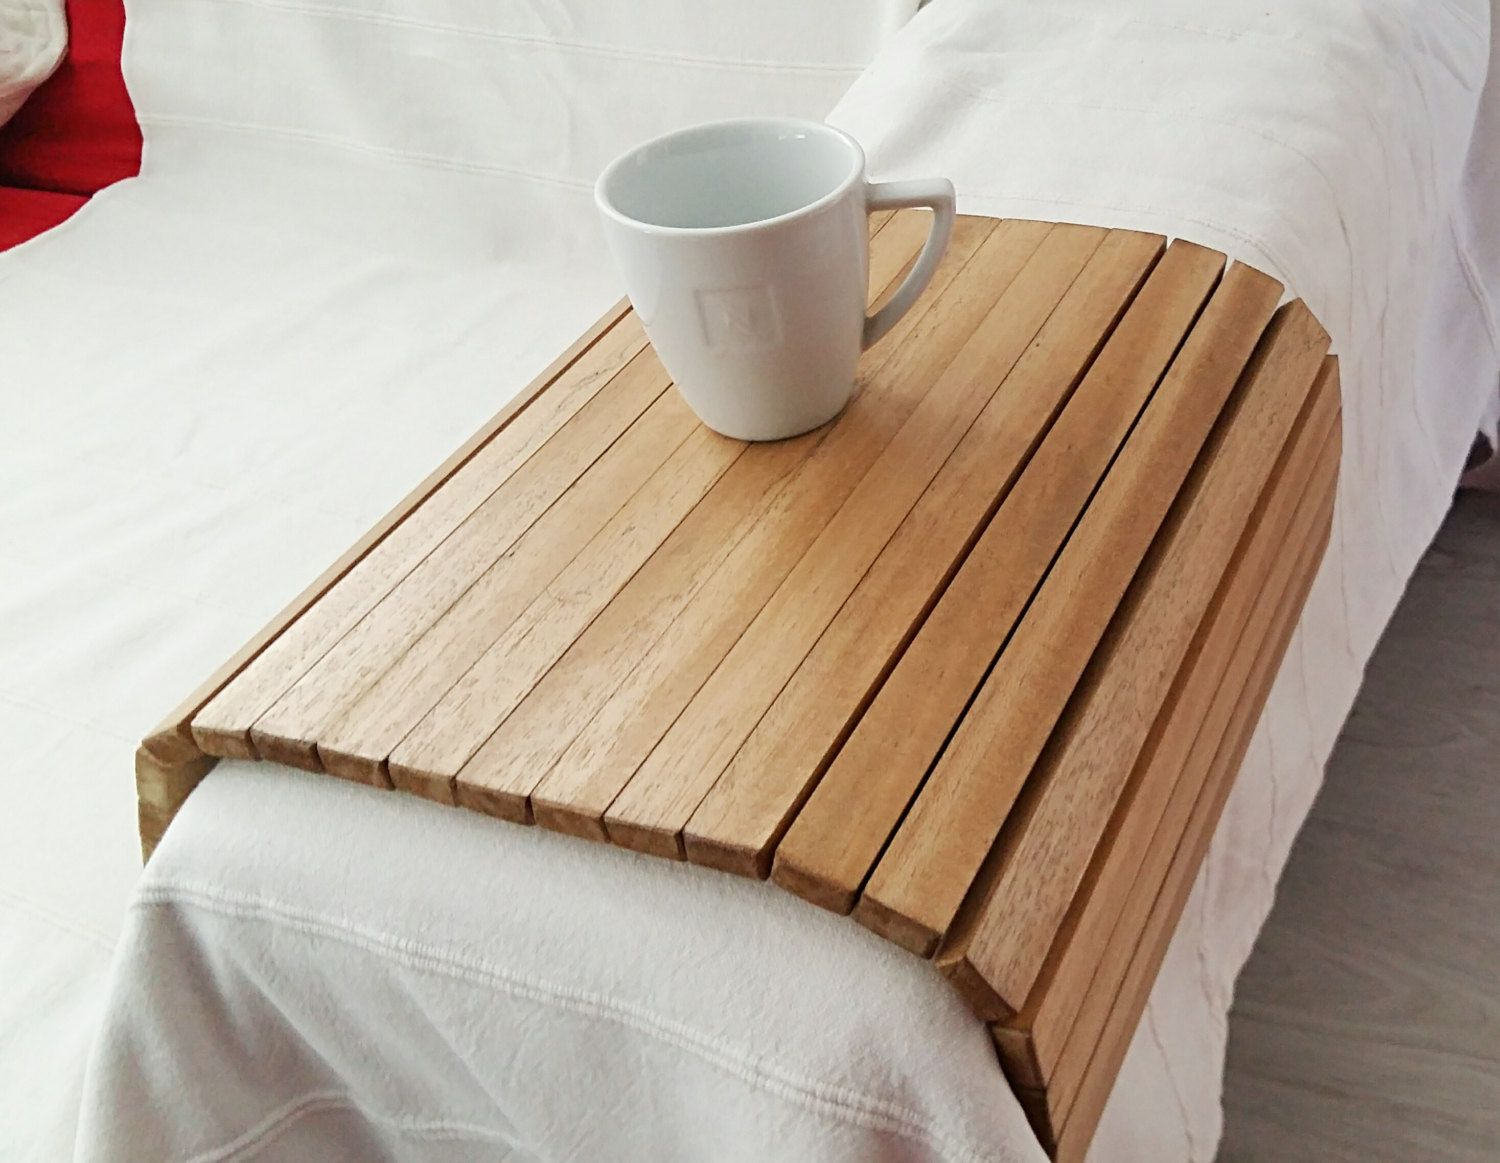 Wooden Trays To Decorate Interesting Sofa Tray Wooden Tray Flexible Chair Tray Wooden Tv Tray Inspiration